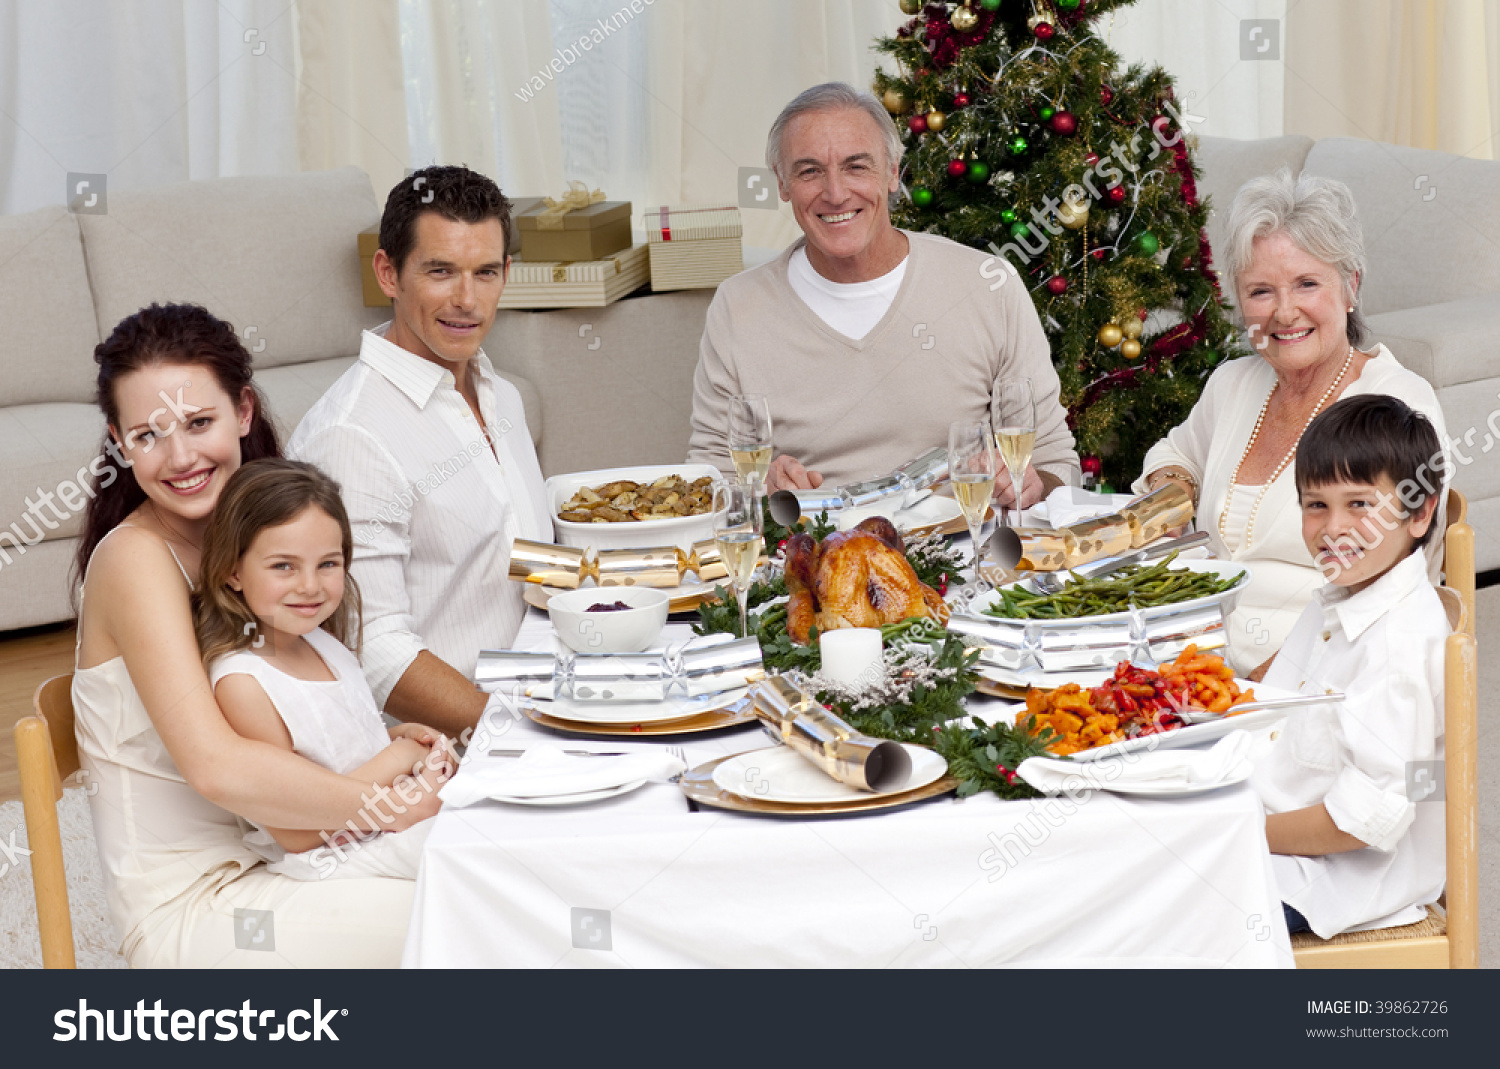 image Christmas family dinner witha a twist